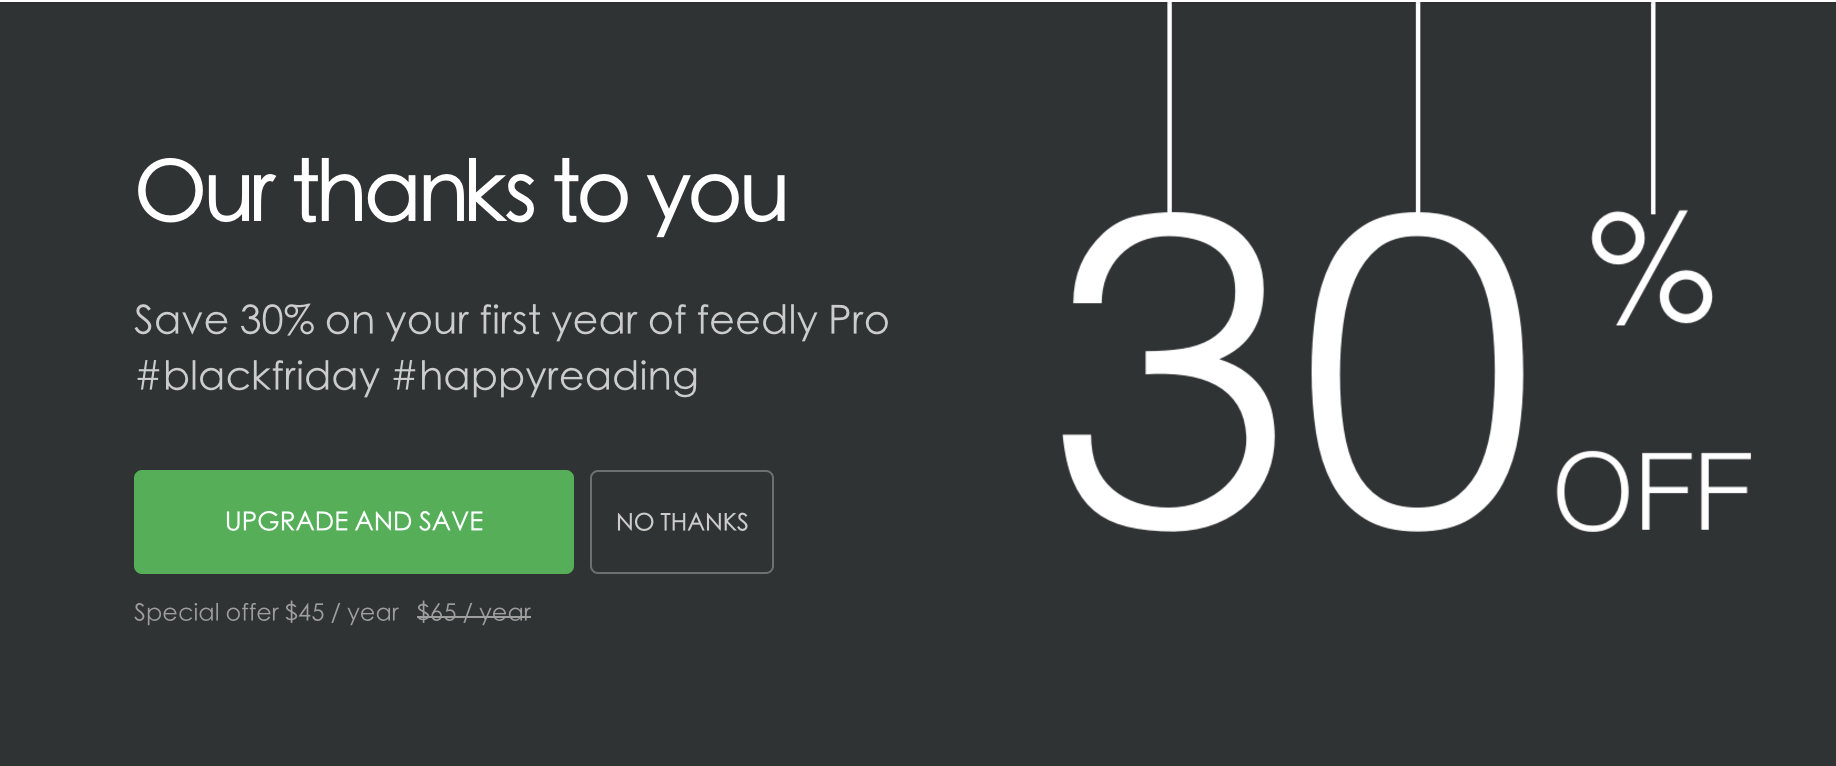 feedly-pro-black-friday-offer_01